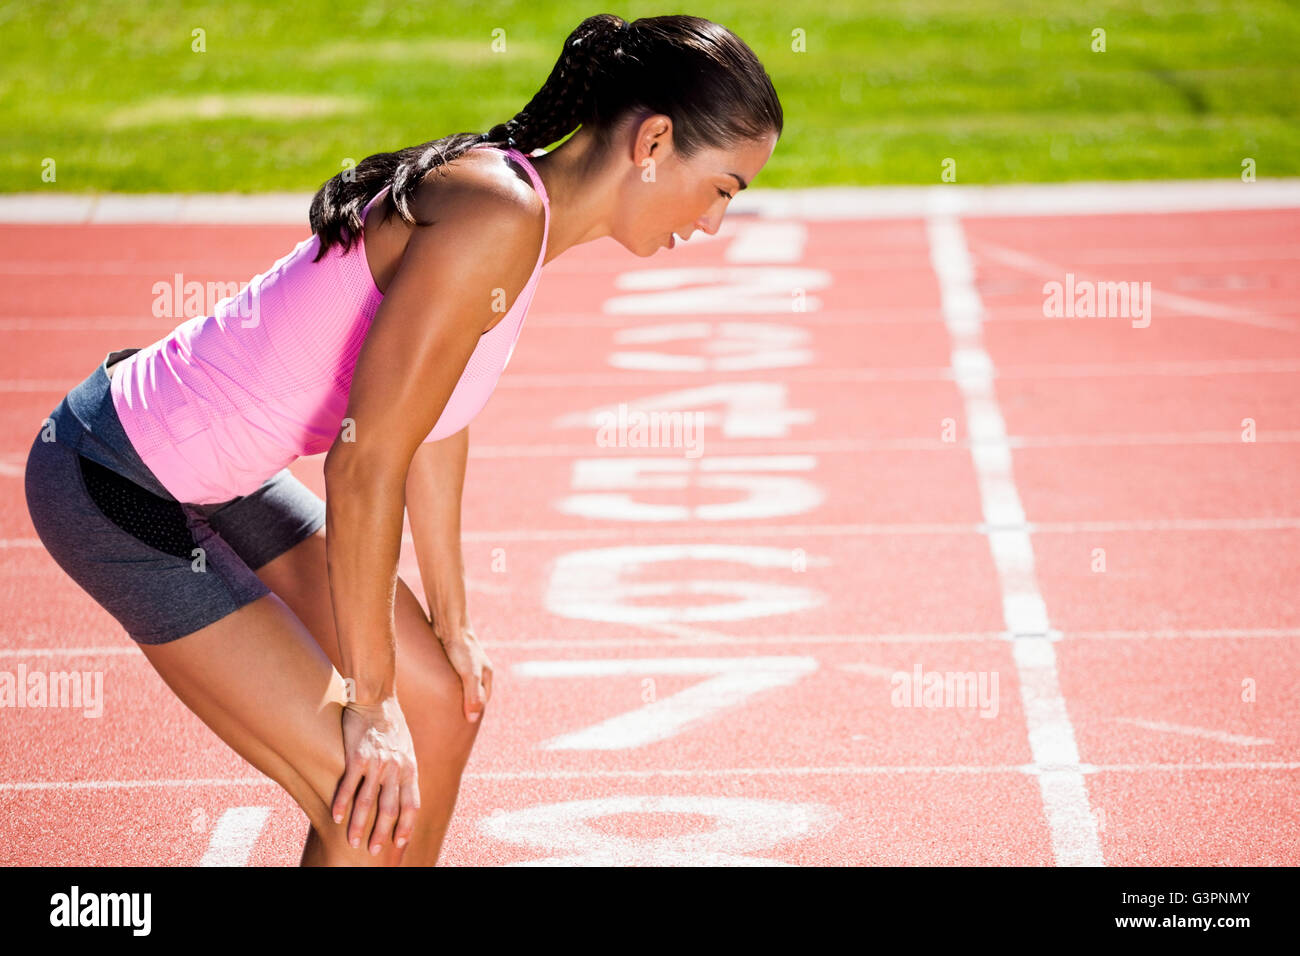 Composite image of profile view of breathless sportswoman - Stock Image